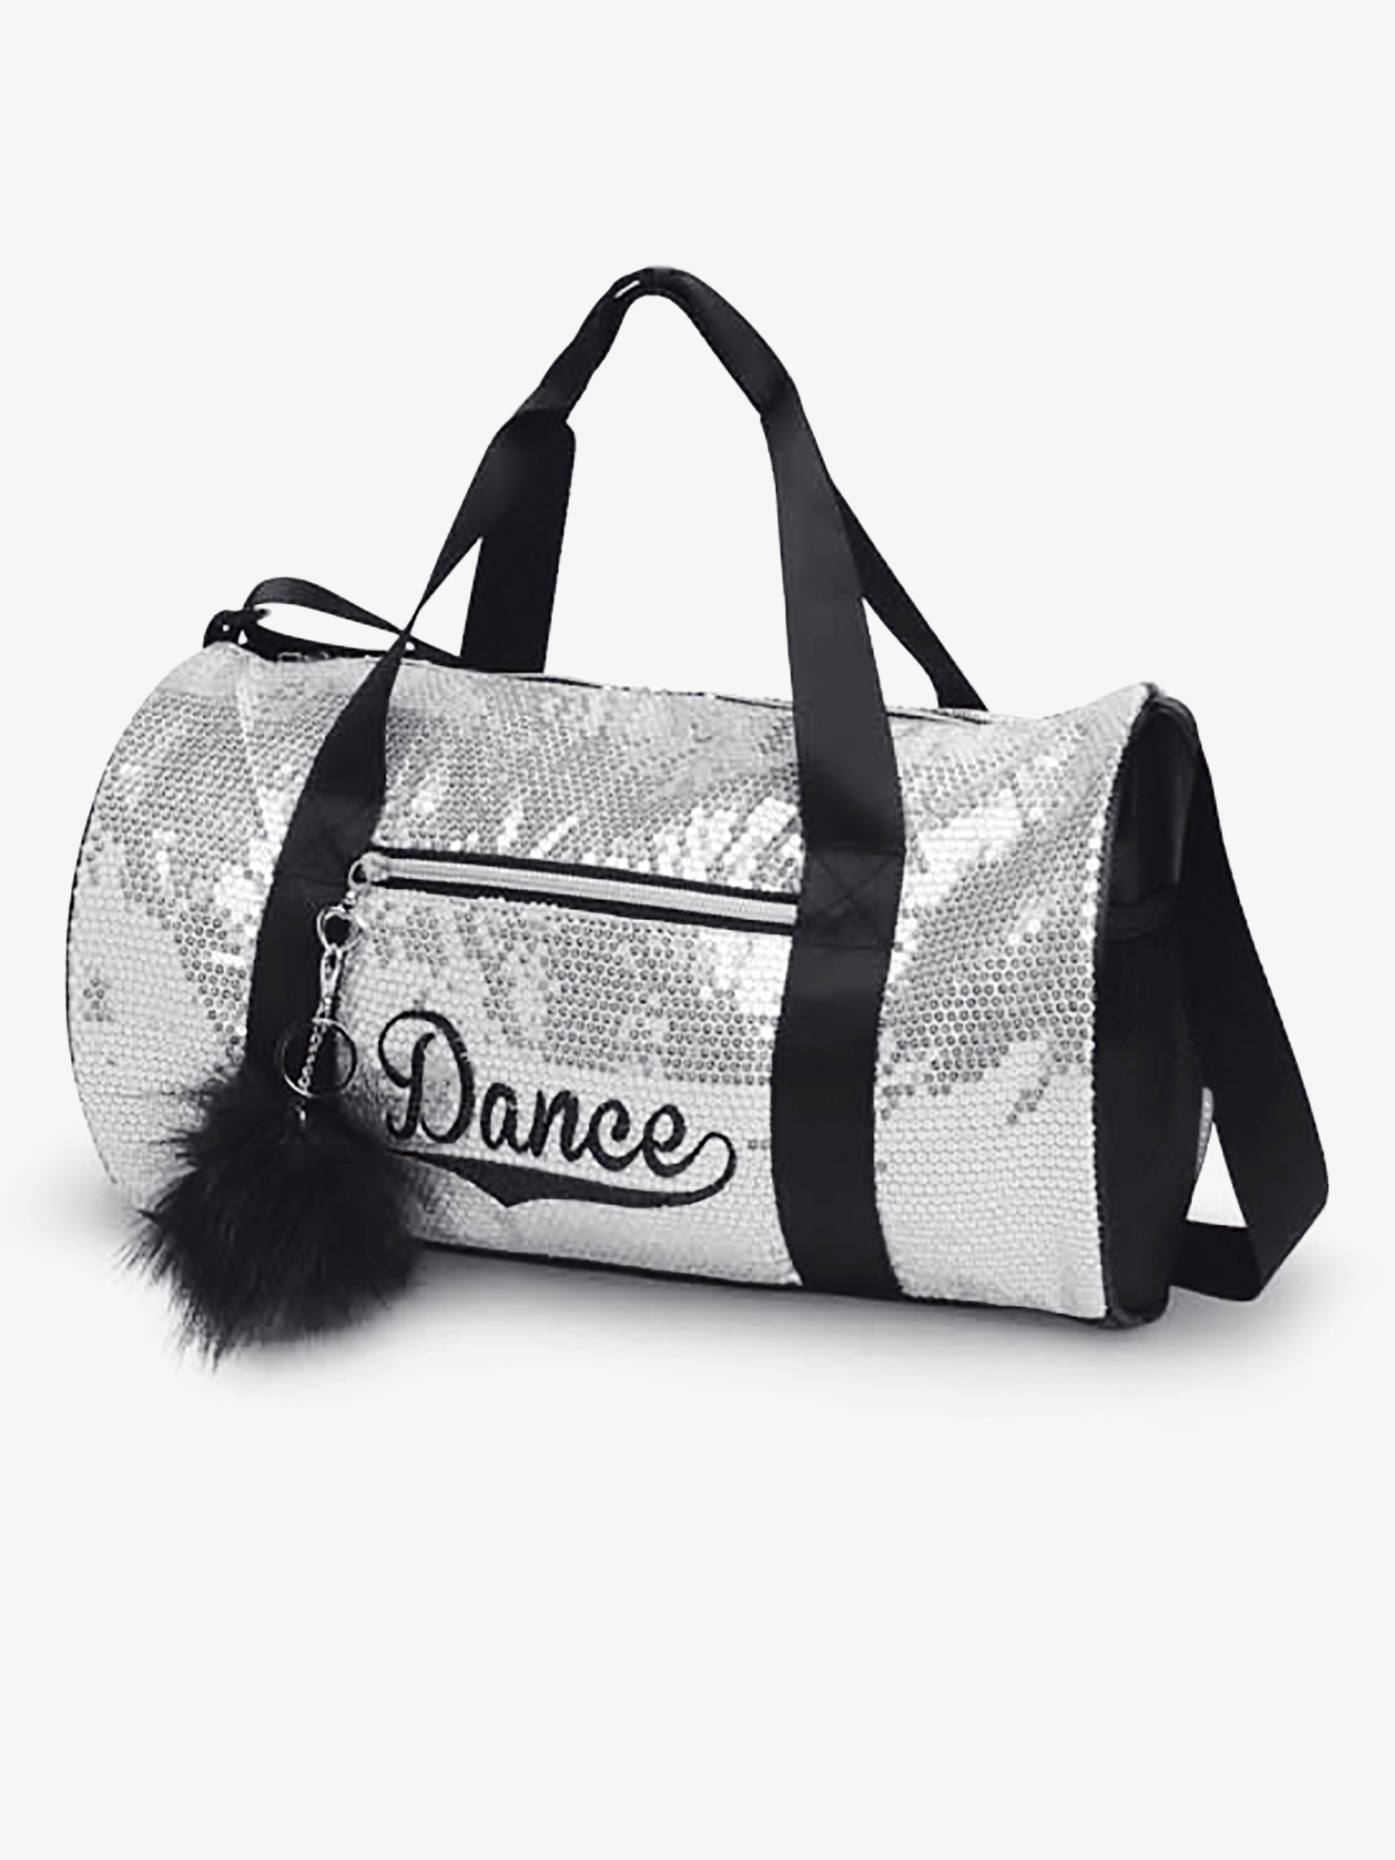 DansBagz Sequin Dance Duffle Bag B452